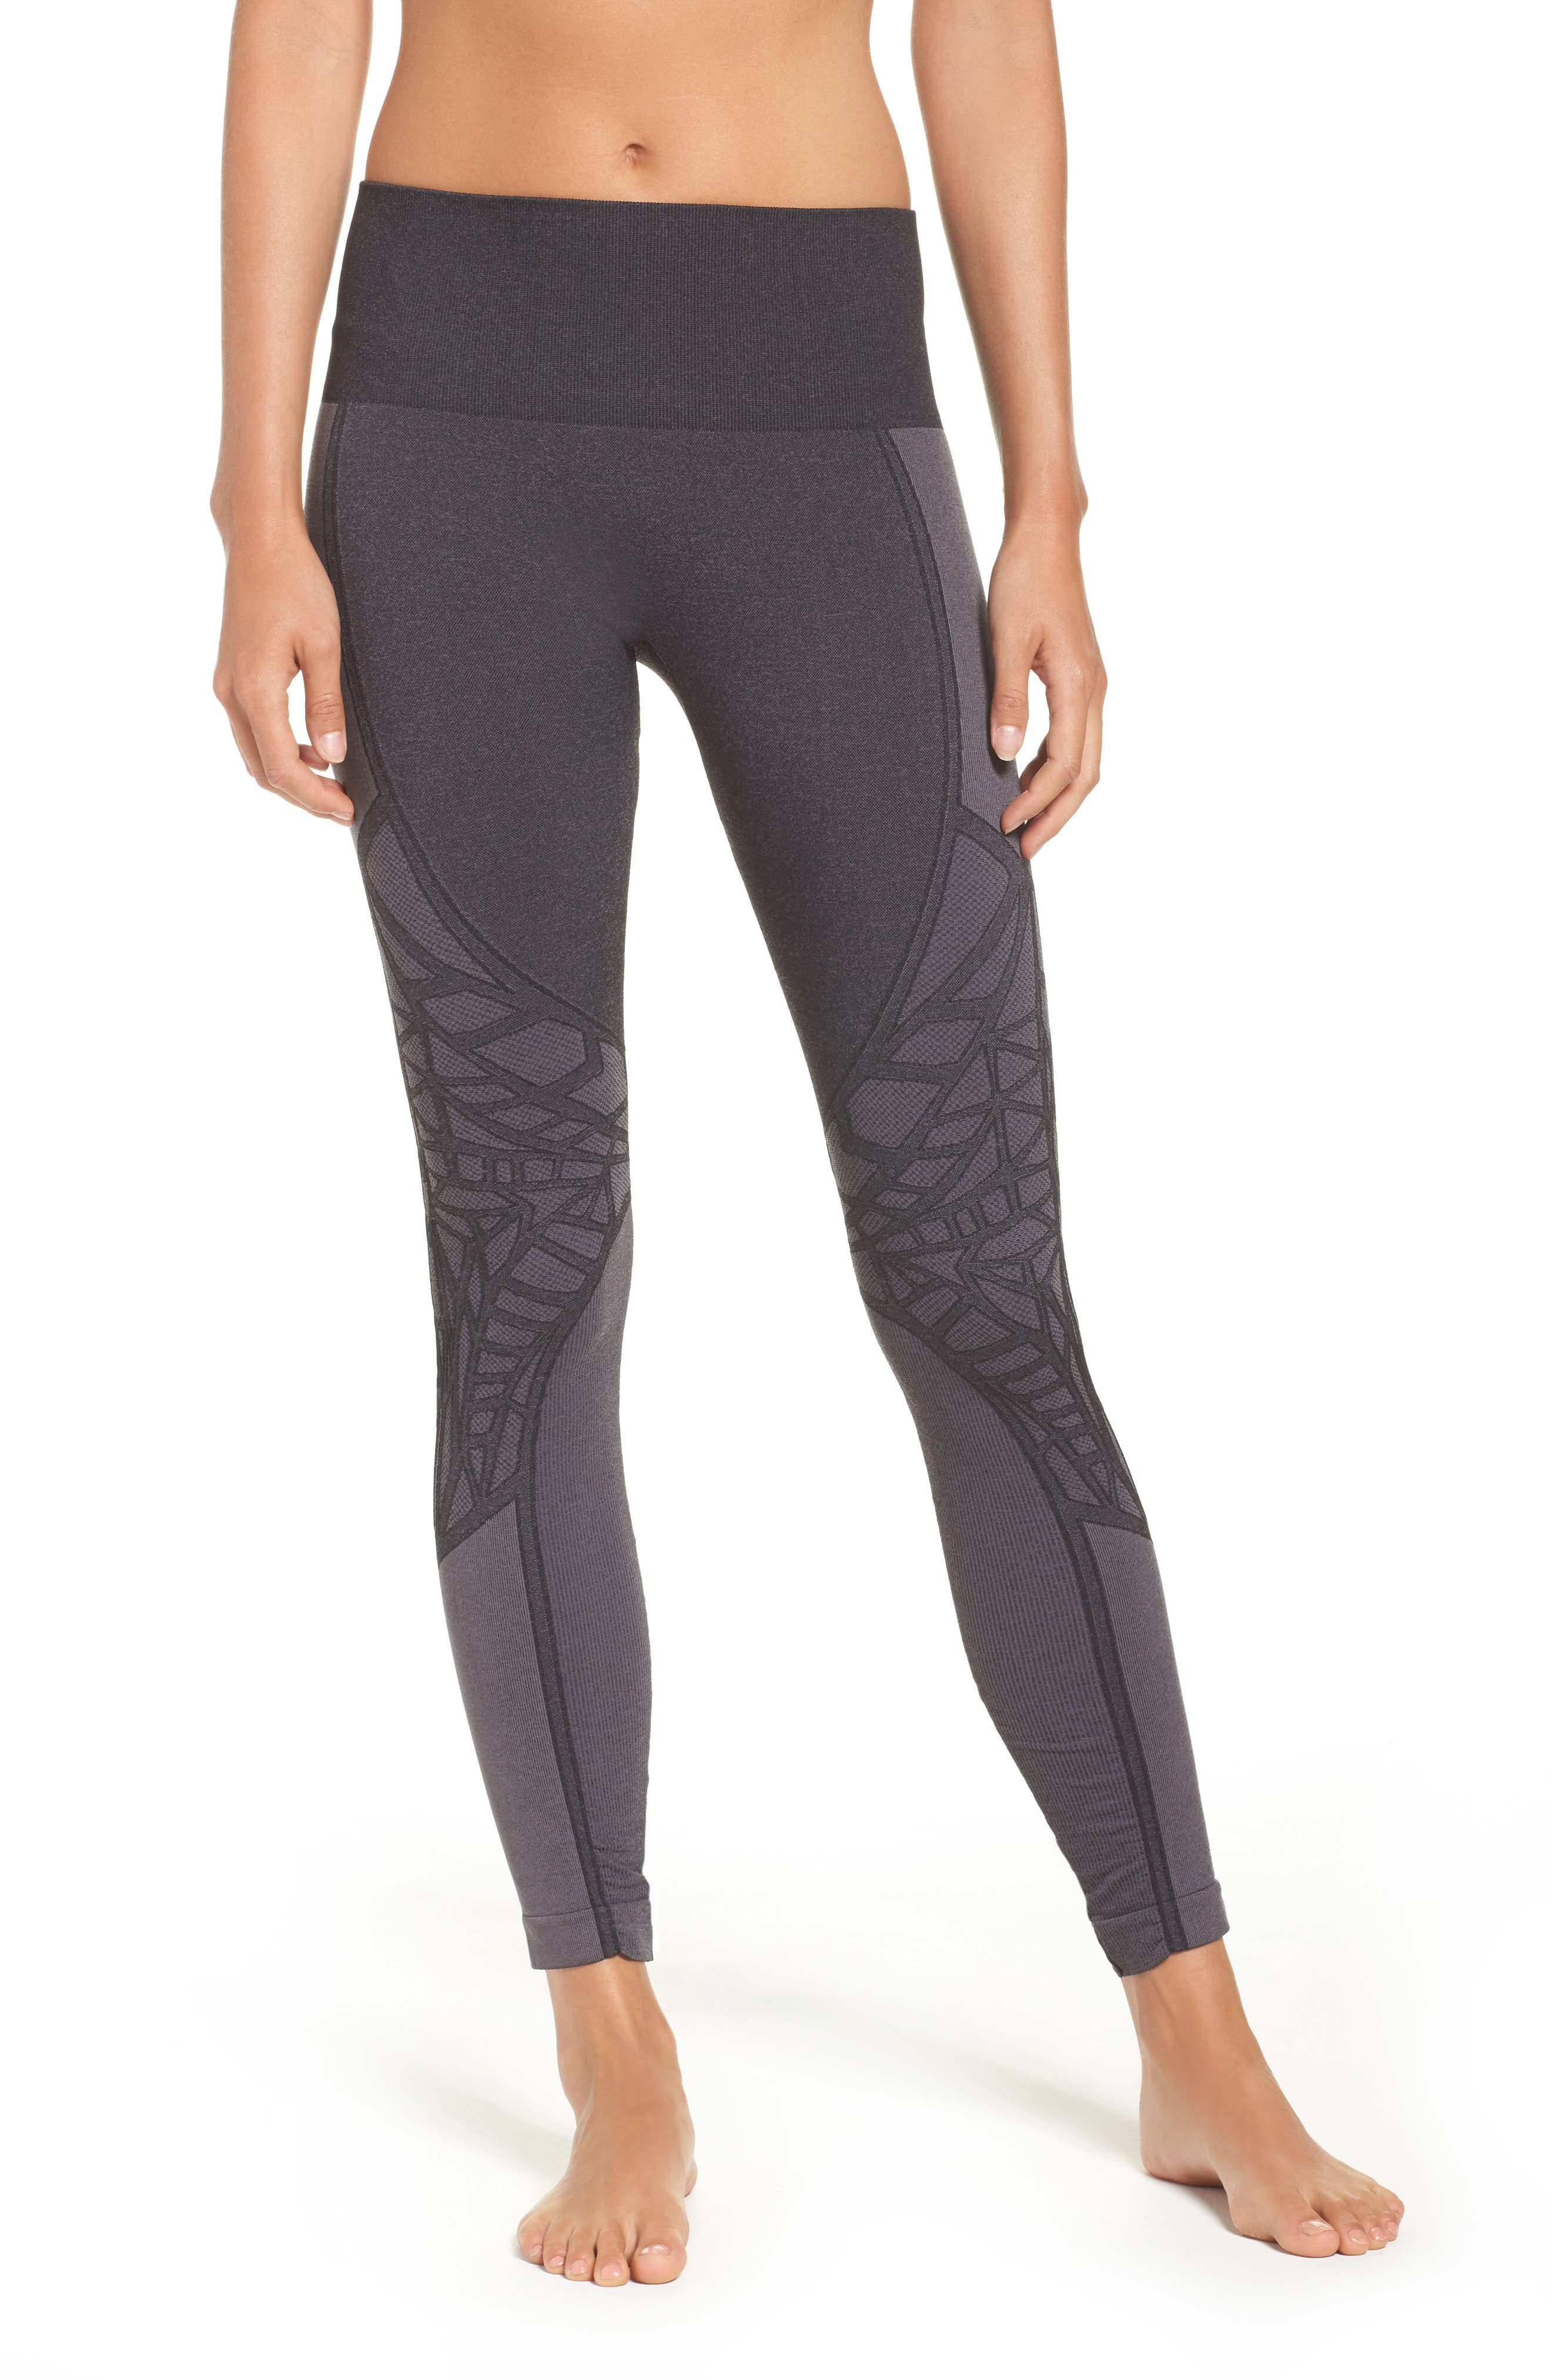 Revolution Leggings,                         Main,                         color, Excalibur And Black